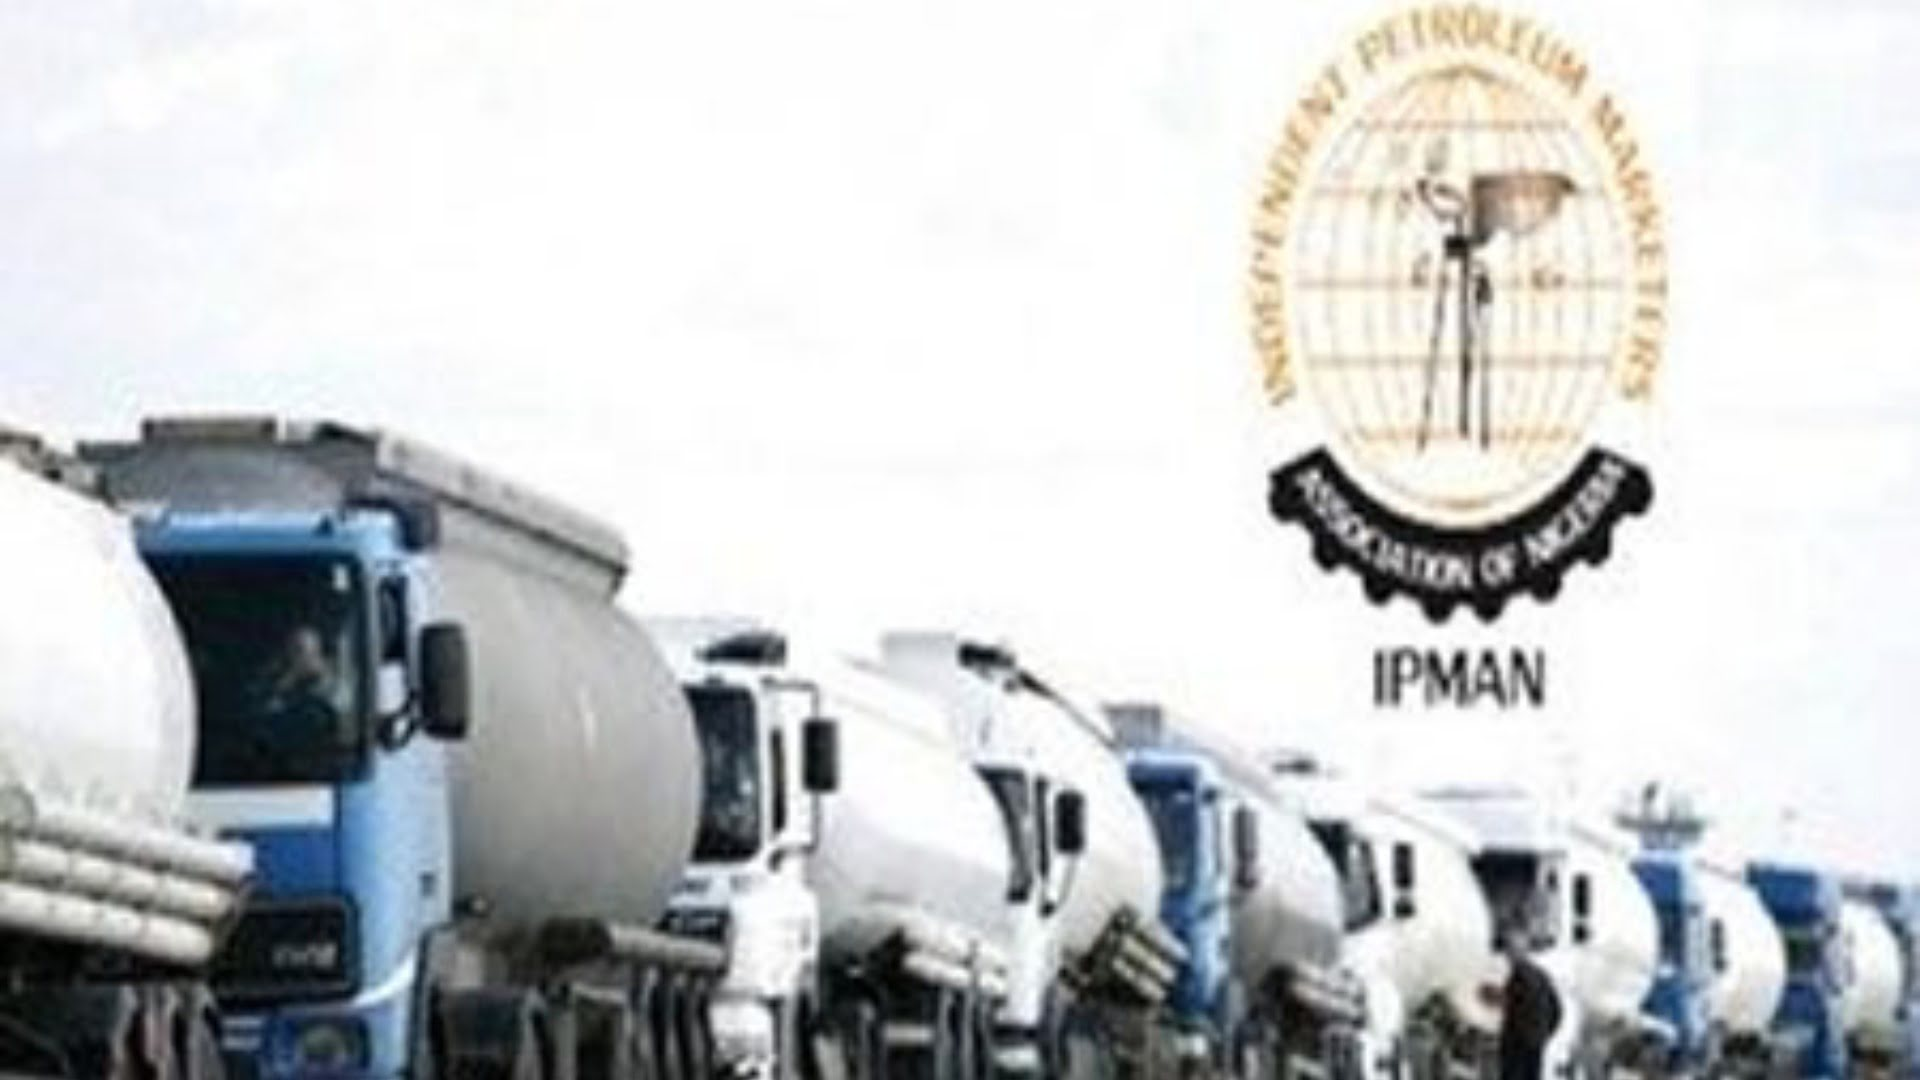 Nigeria news : IPMAN explains reasons for fuel hoarding by filling stations in Lagos